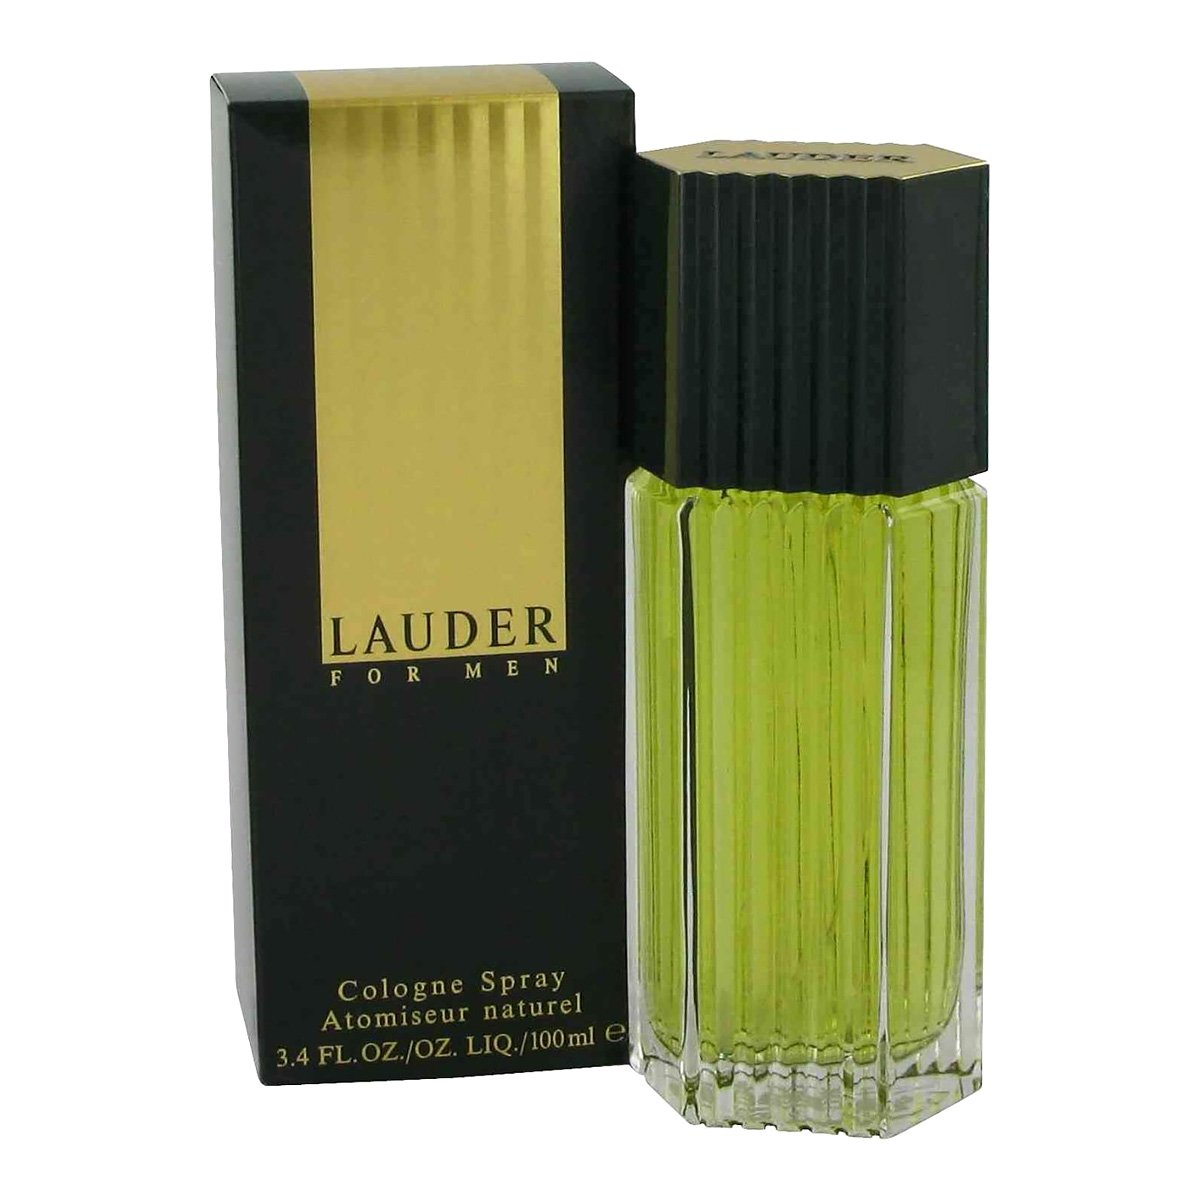 Купить Одеколон Estee Lauder, Estee Lauder Lauder For Men 50ml, США